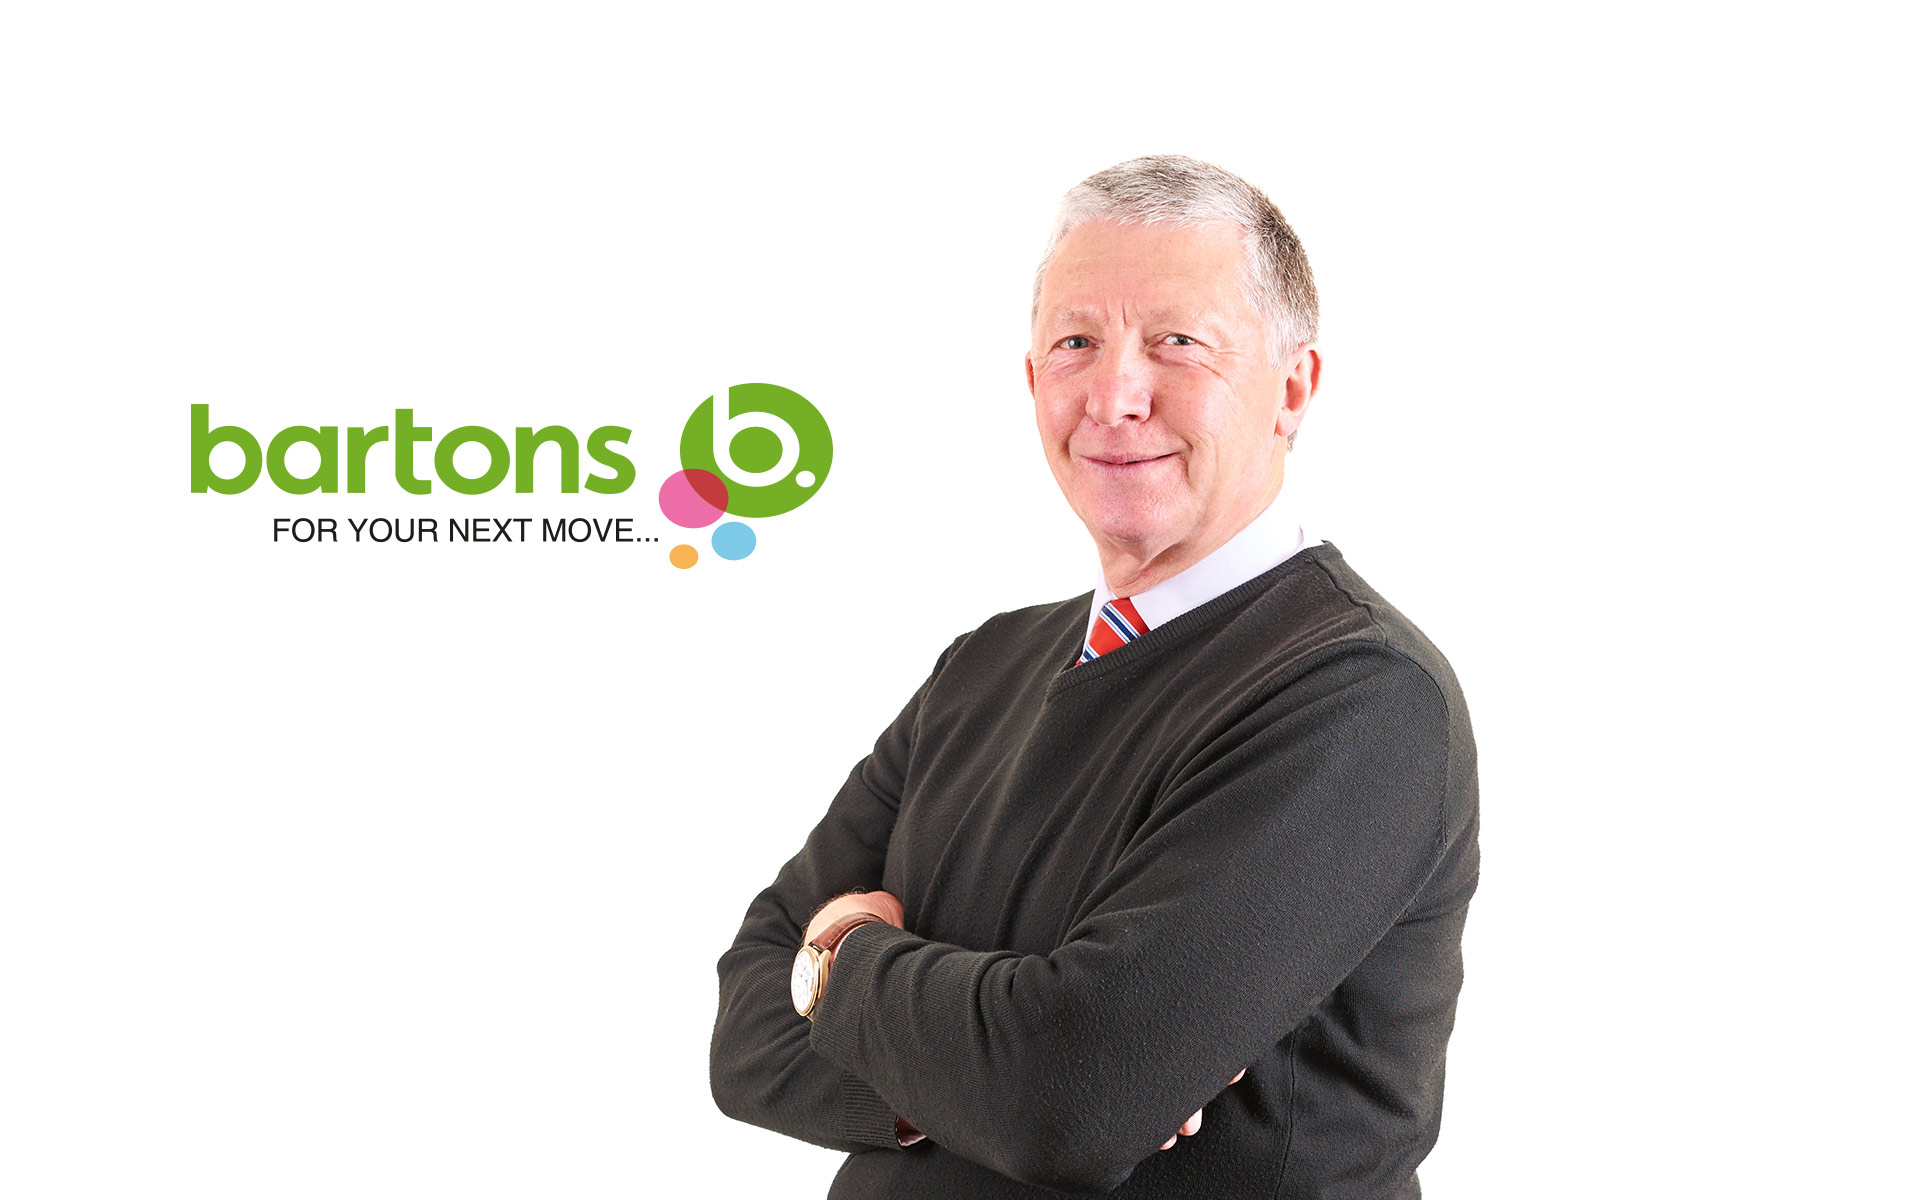 Bartons-IDEA-Rotherham-Photographer-Roy